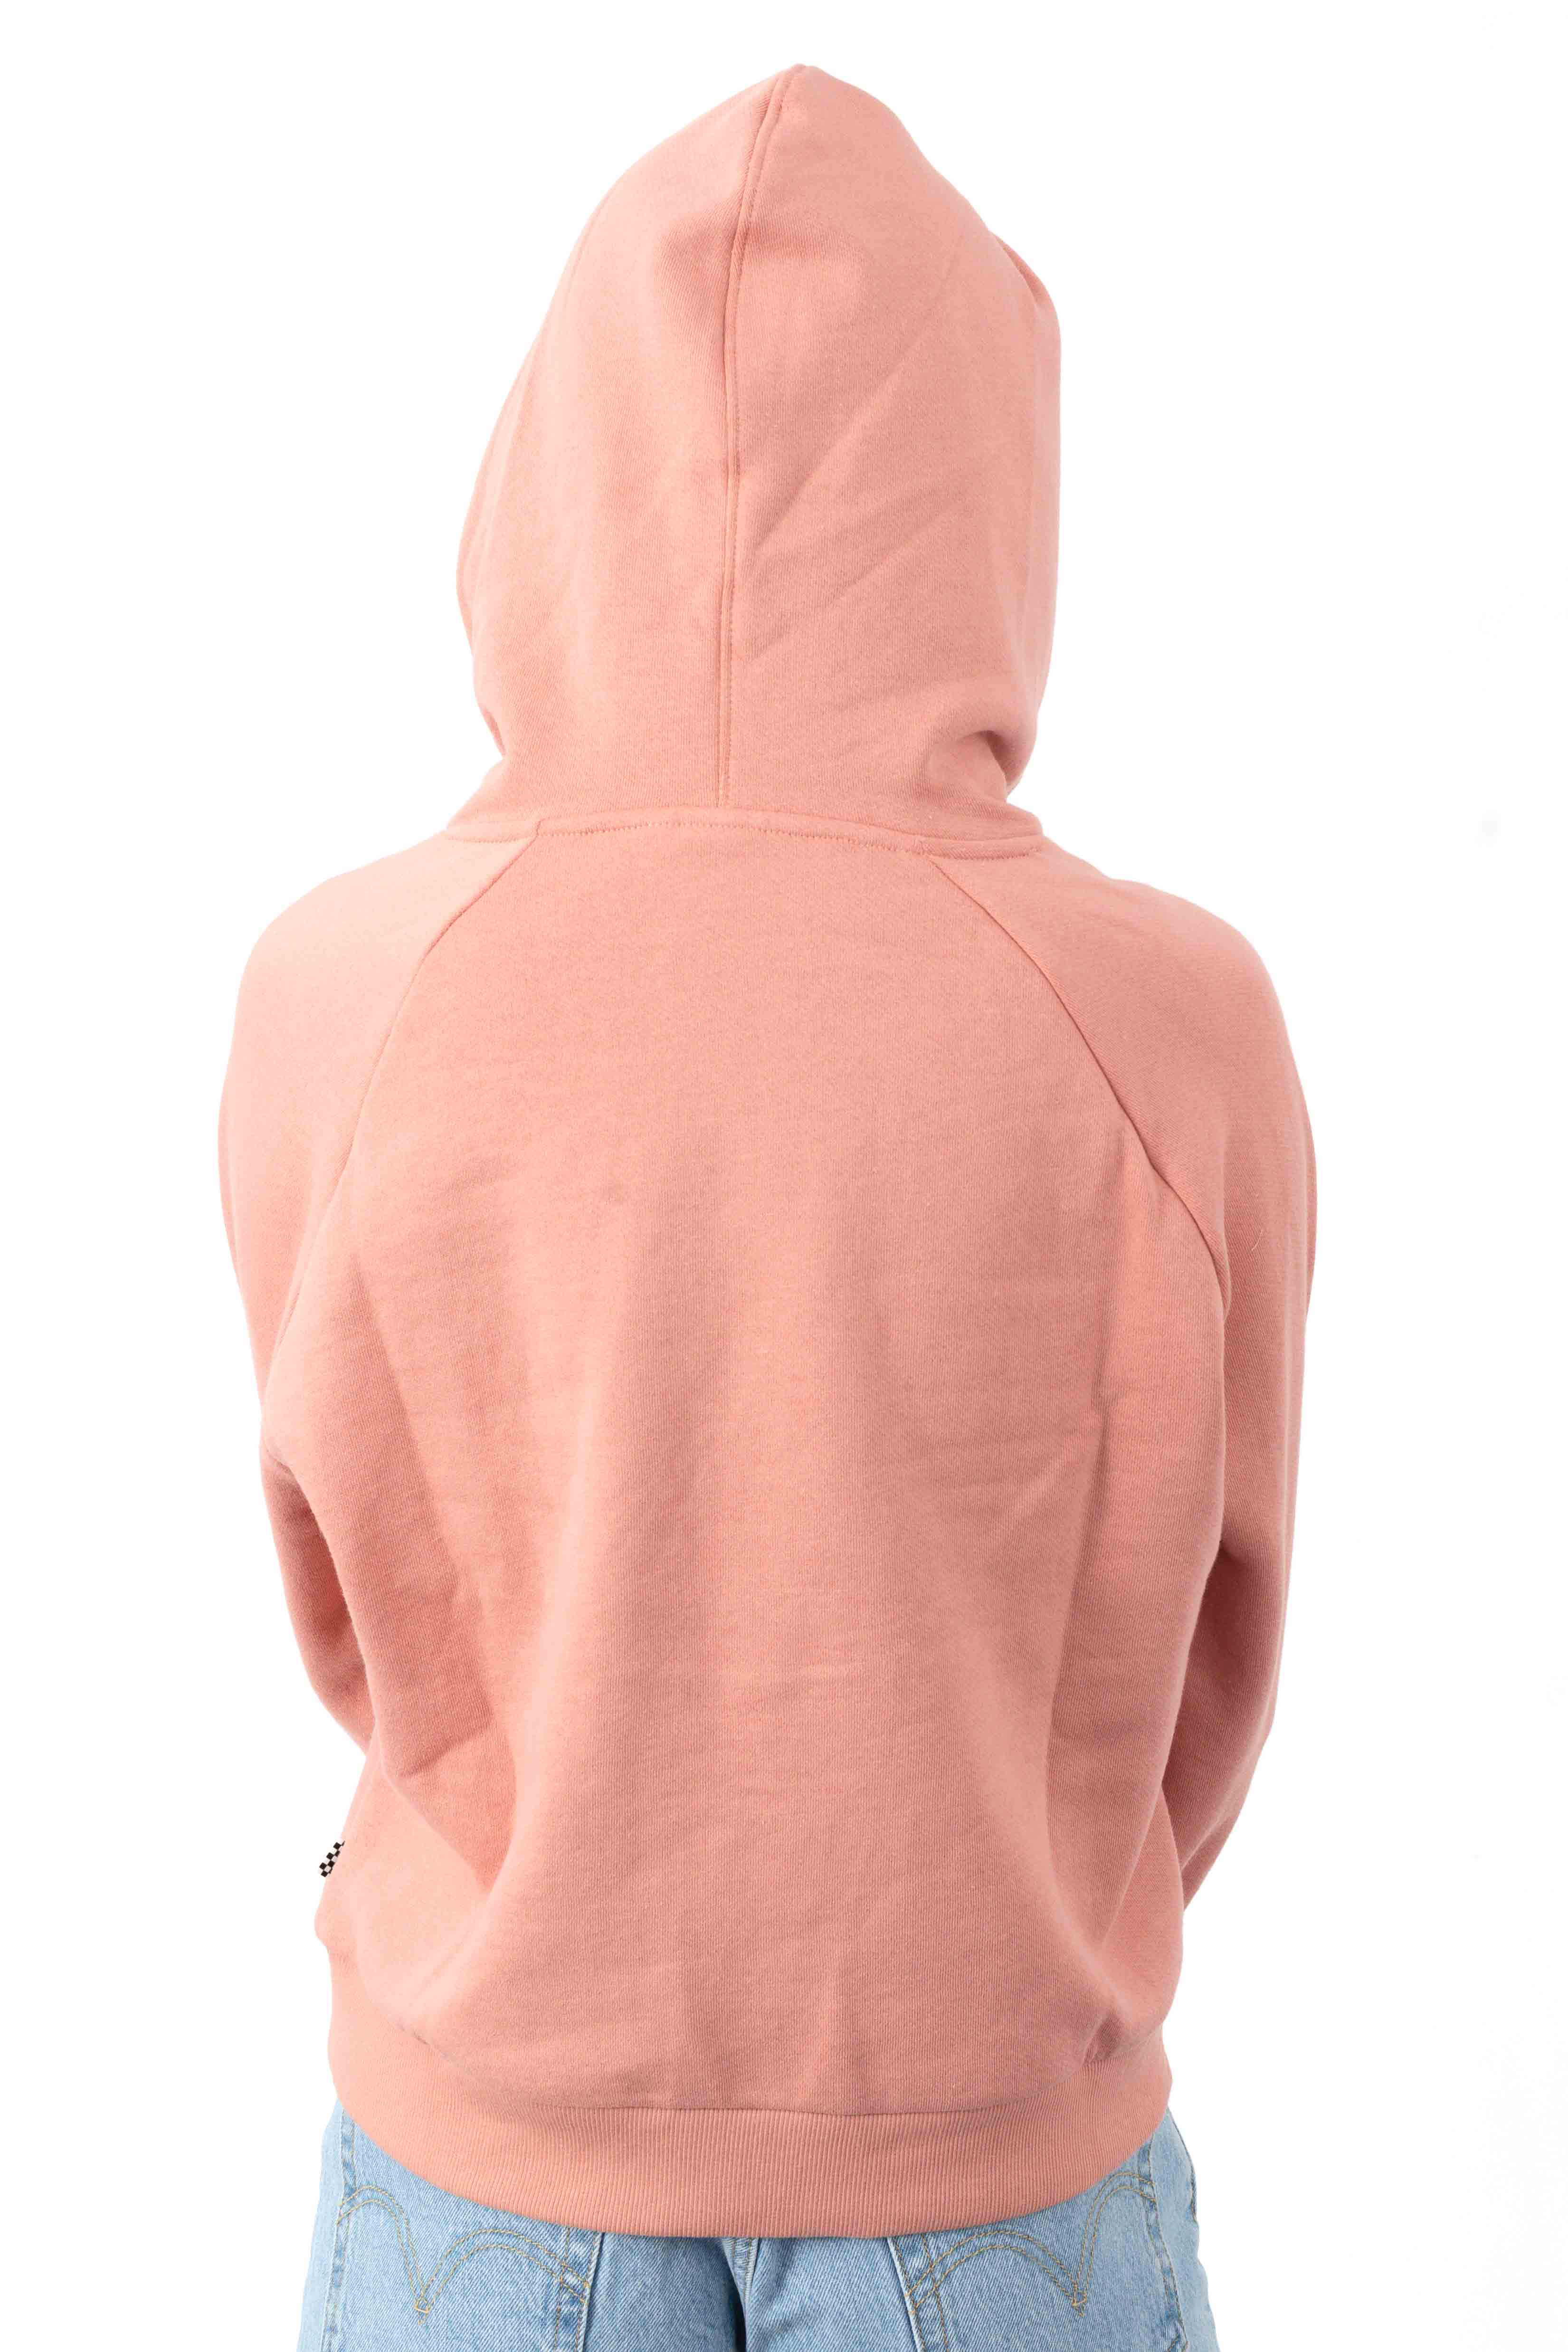 Flying V Boxy Pullover Hoodie - Rose Dawn 3